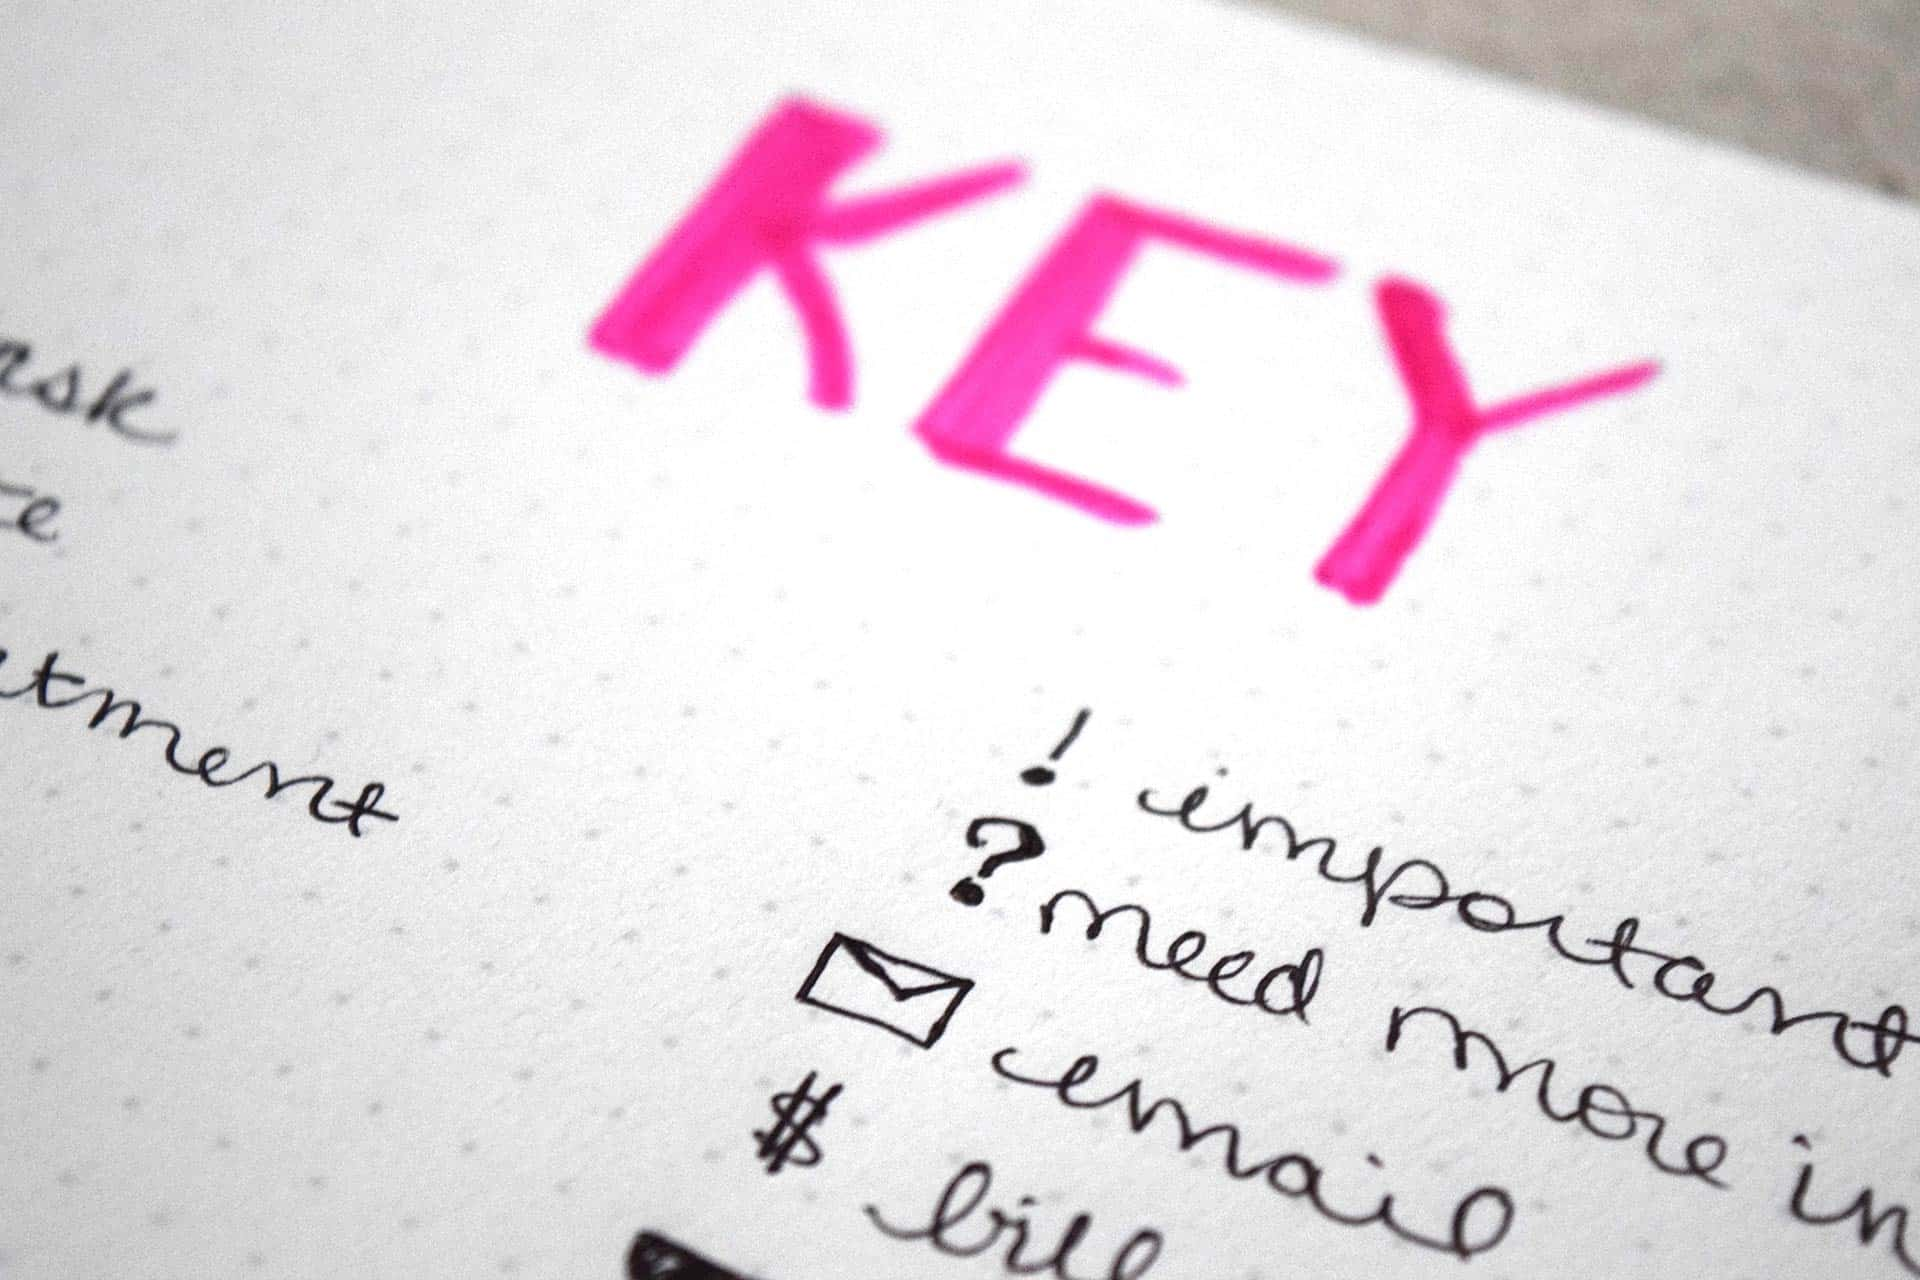 How to Make the Bullet Journal Key Work For You